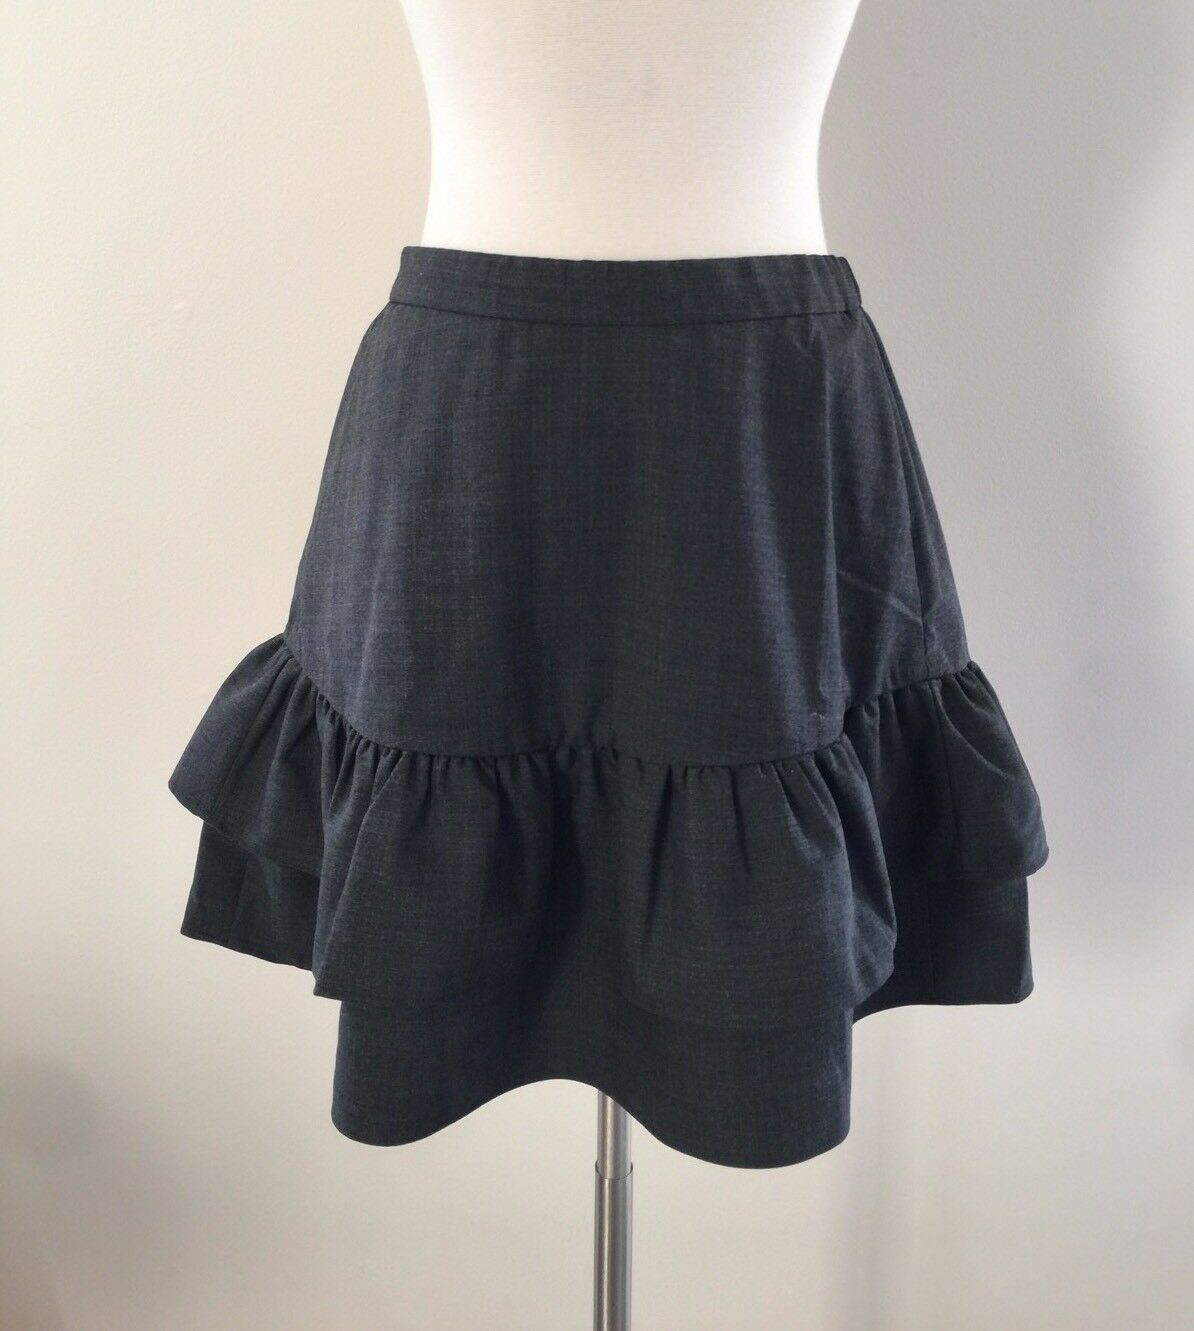 New J Crew Wool Flannel Ruffle Office Skirt Heather Charcoal Grey Sz 0 G7119